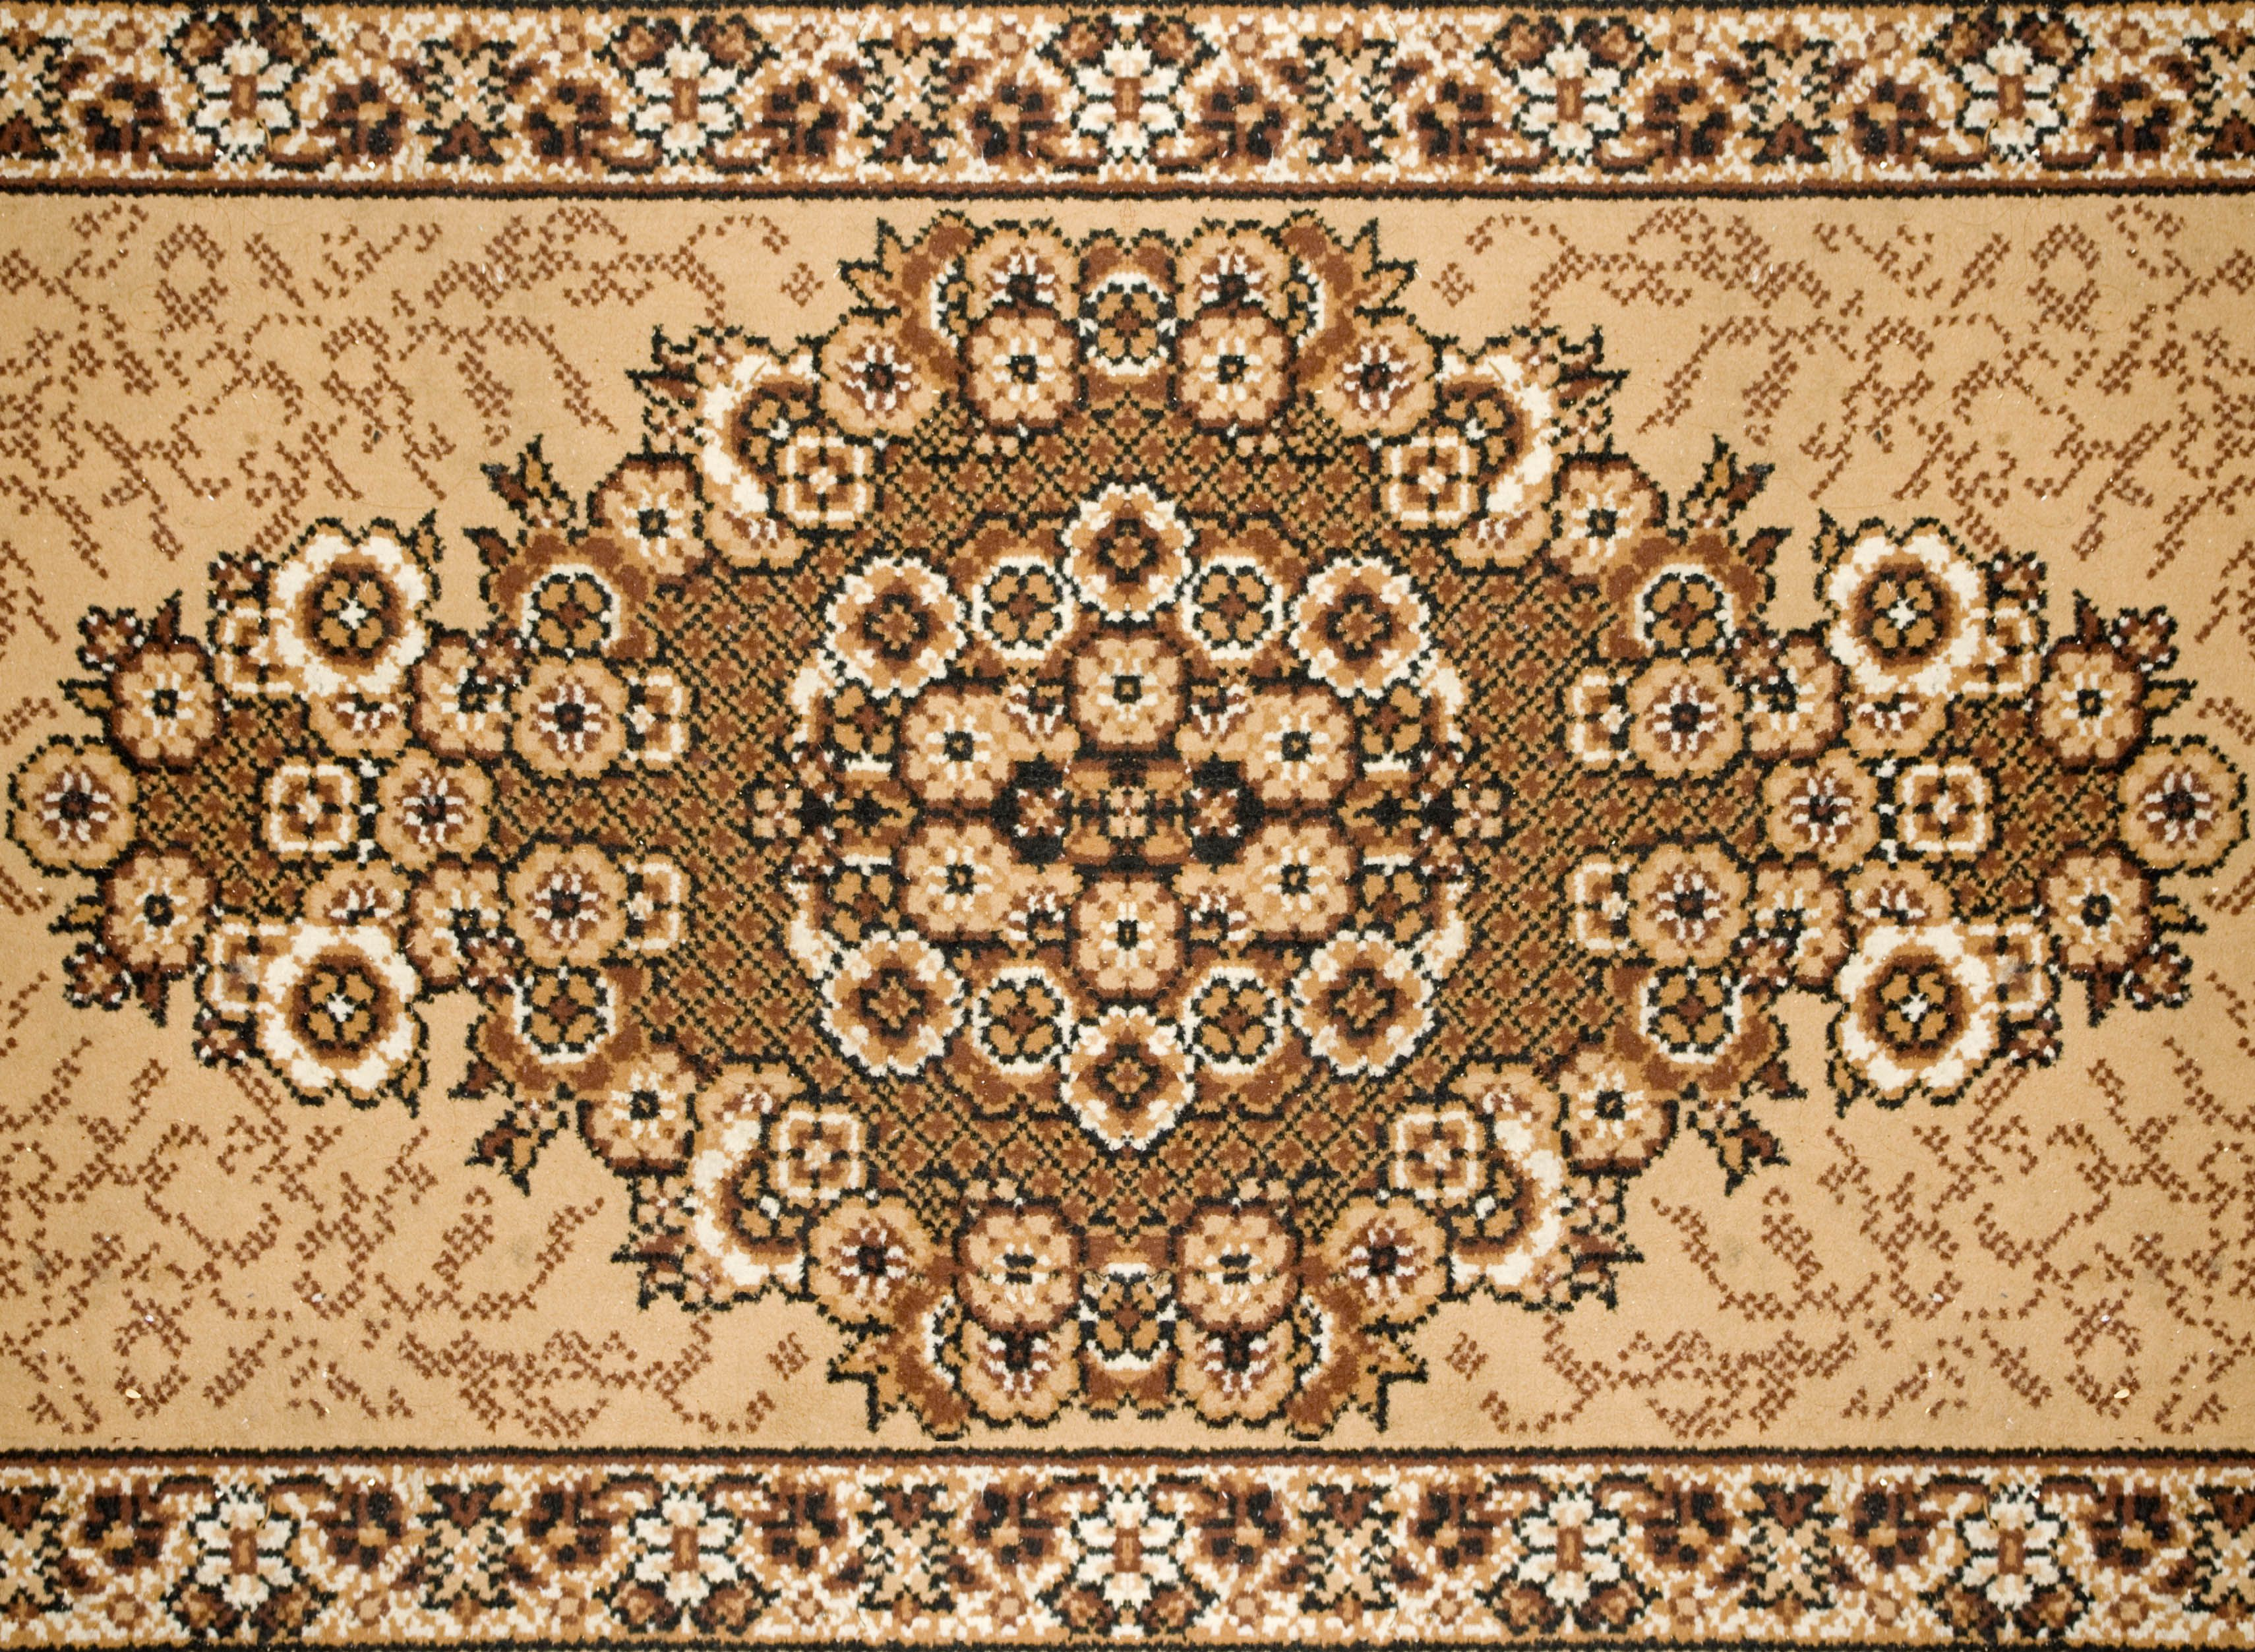 Persian Carpet Texture I Want This Carpet Patterned